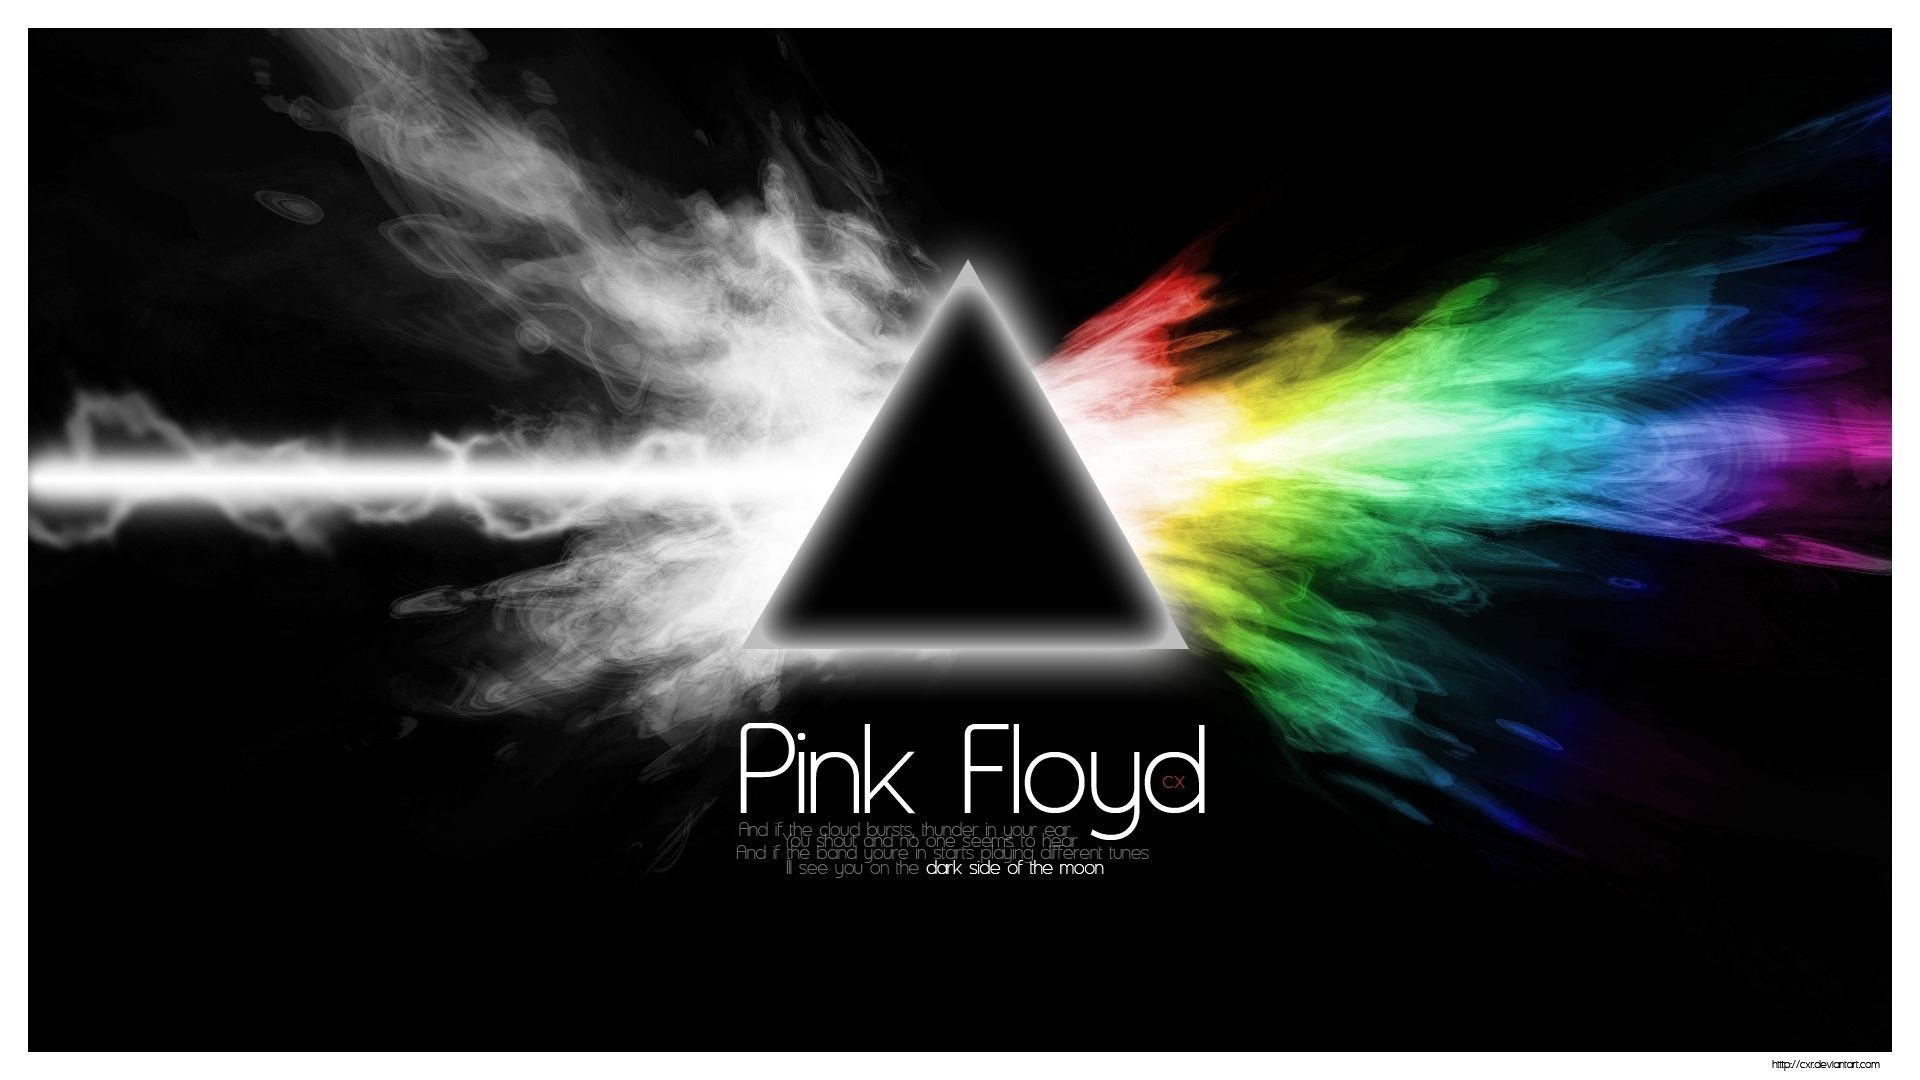 1920x1080  Full HD 1080p Pink floyd Wallpapers HD, Desktop Backgrounds